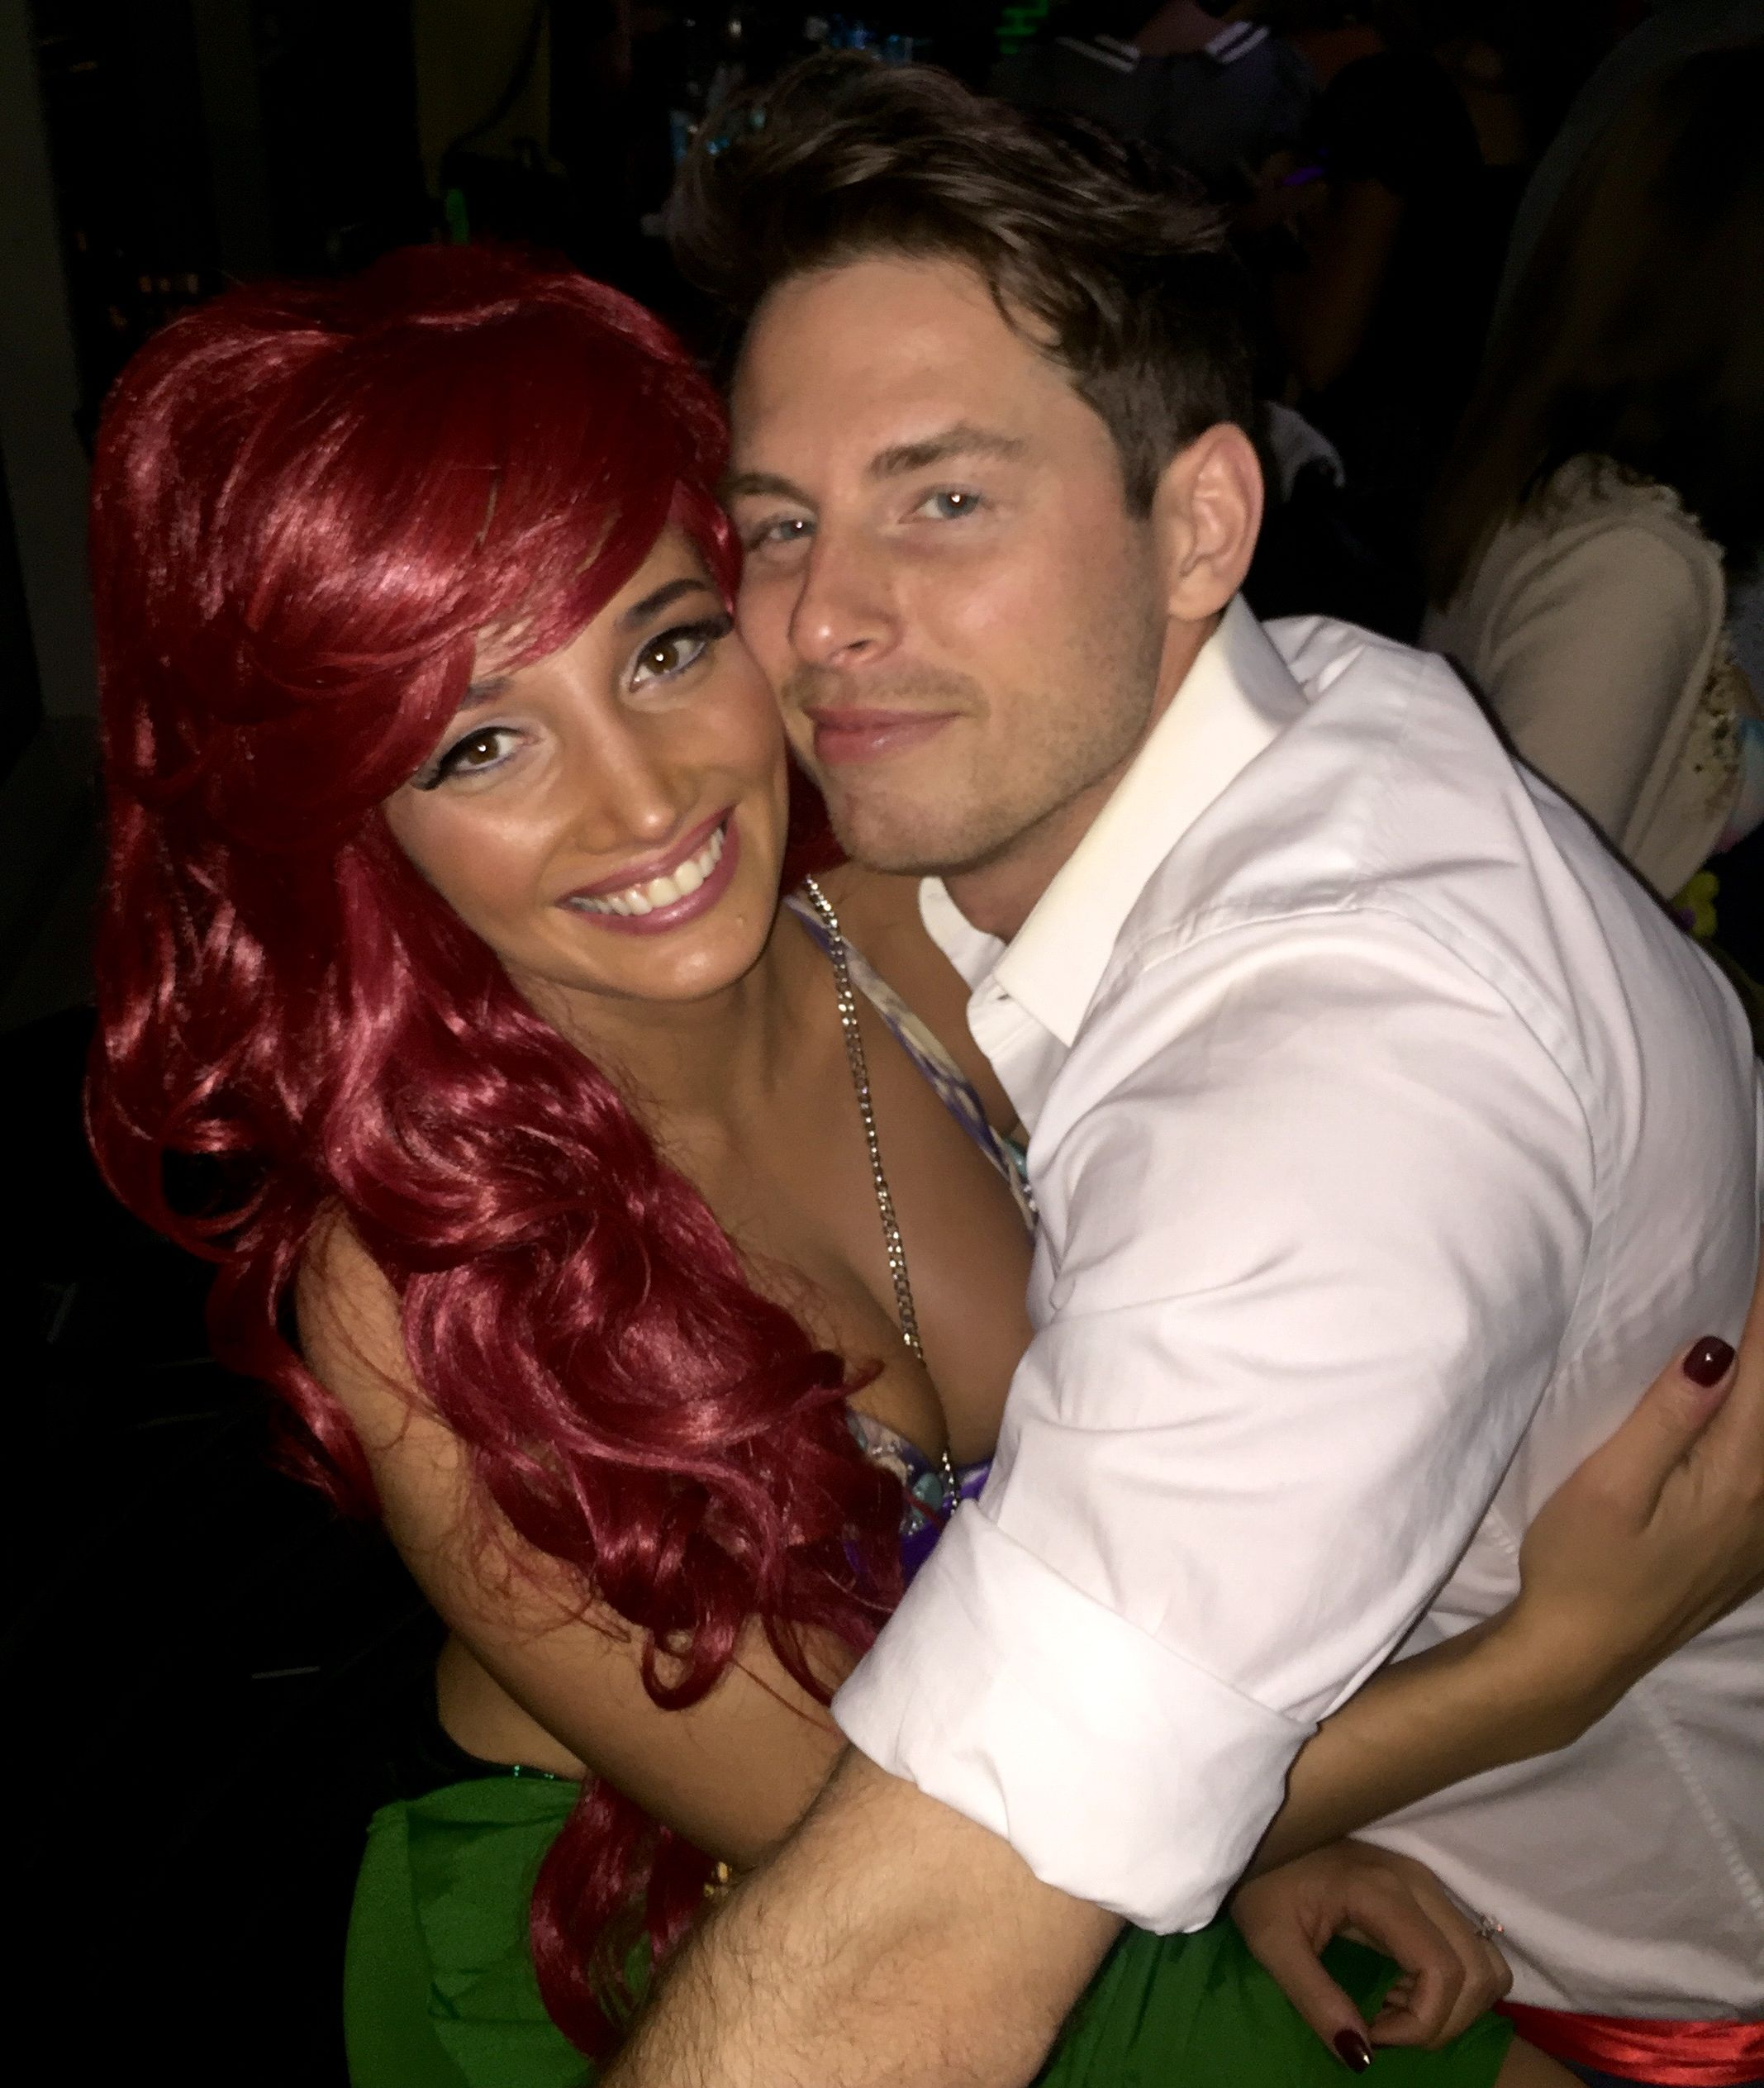 Ariel (bride) and Prince Eric (groom) at their joint bachelor and bachelorette party @disneybride2be bridesmaidsconfession